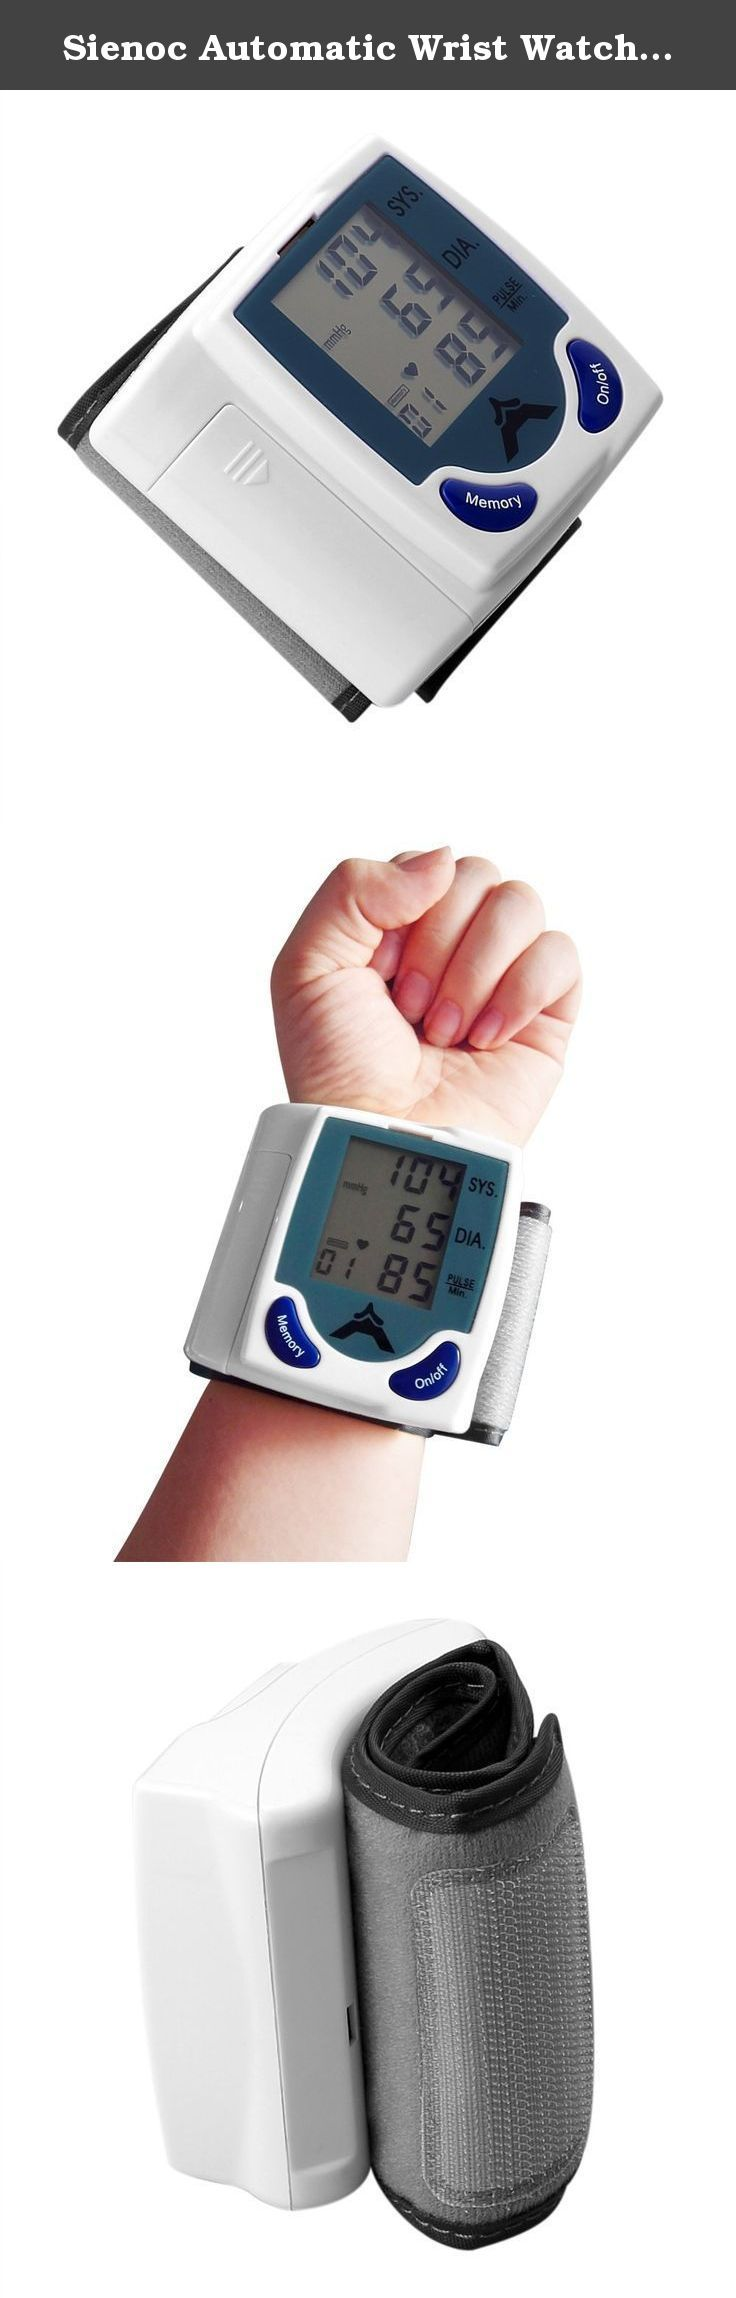 Sienoc Automatic Wrist Watch Blood Pressure Monitor Heart Rate Meter with LCD Display Color White. Features: Intelligent automatic compression and decompression Measure systolic, deastolic and pulse at the same time Easy to operate, switching button to start measuring 60 store groups memory measurement Can read single or all measures 3 minutes automatic power saving device Intelligent device debugging ,automatic power to detect Local tests for: wrist circumference as 135~195mm Largescale...